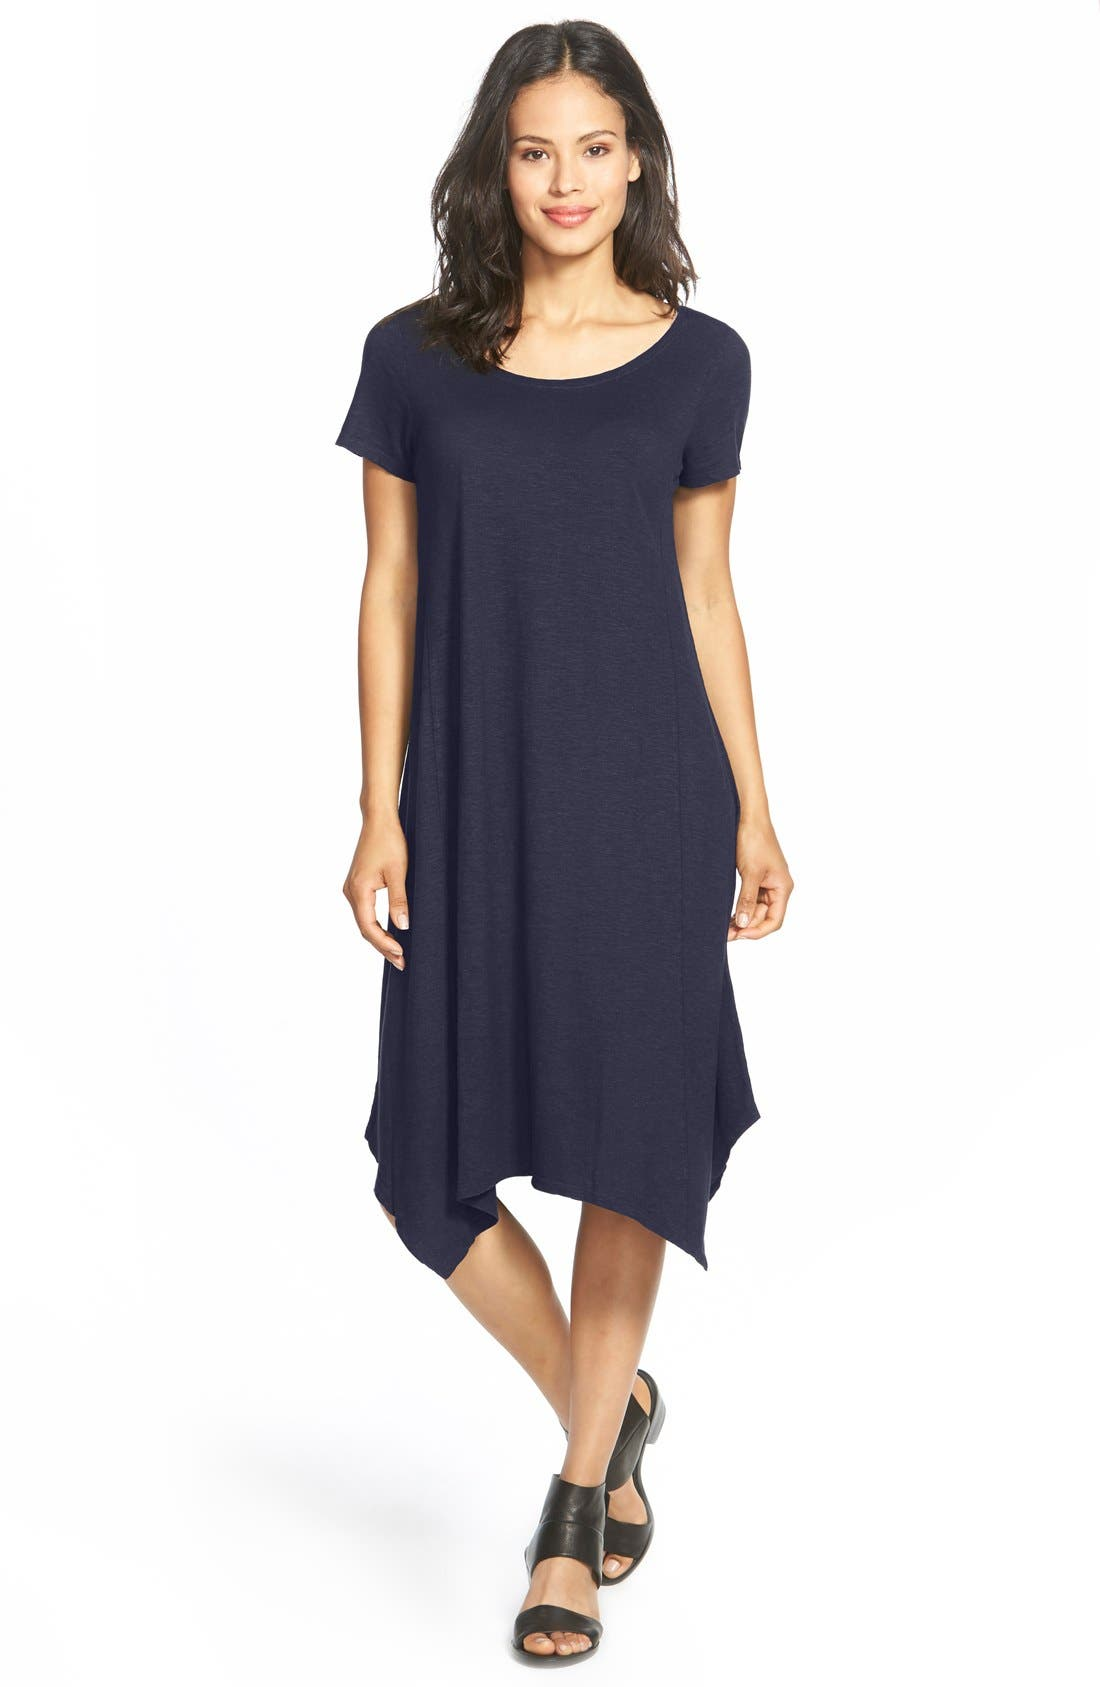 Eileen Fisher Hemp & Organic Cotton Handkerchief Dress (Regular & Petite) (Nordstrom Exclusive)